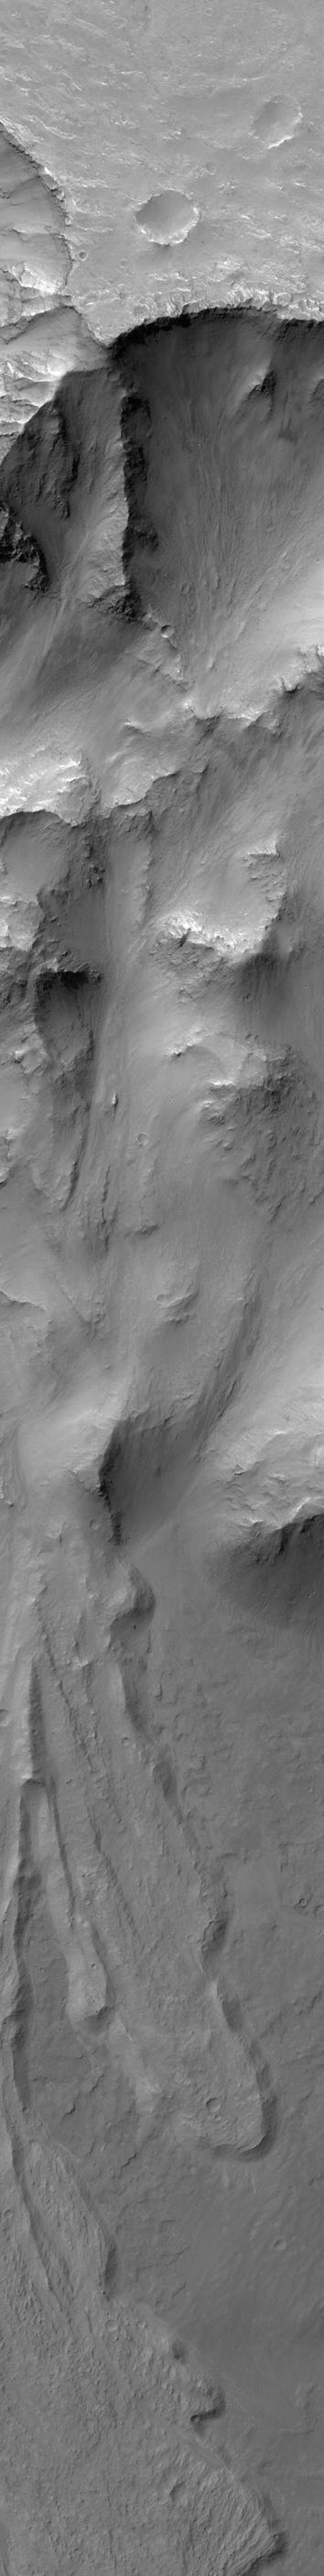 NASA's Mars Global Surveyor shows part of a large landslide complex off the north wall of Coprates Chasma in the Valles Marineris trough complex on Mars.